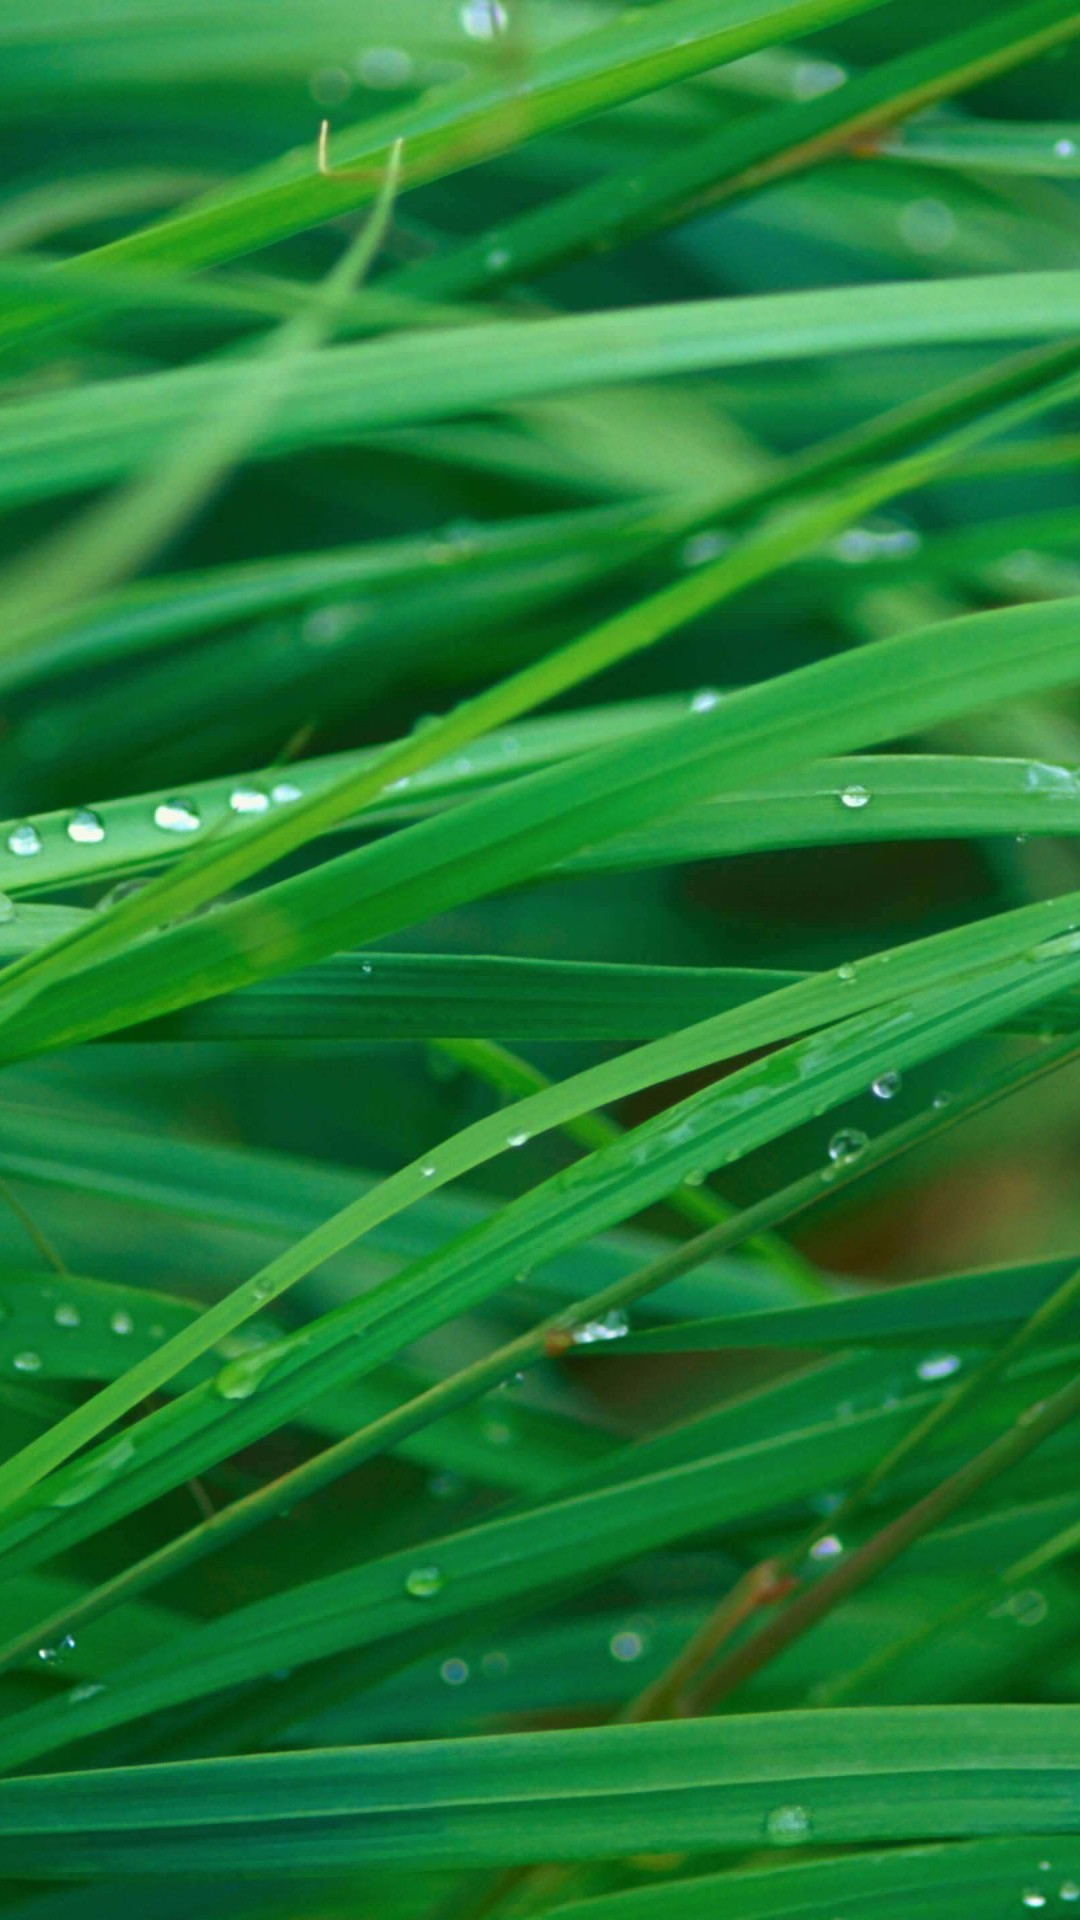 Green Blades Of Grass Wallpaper for SONY Xperia Z1